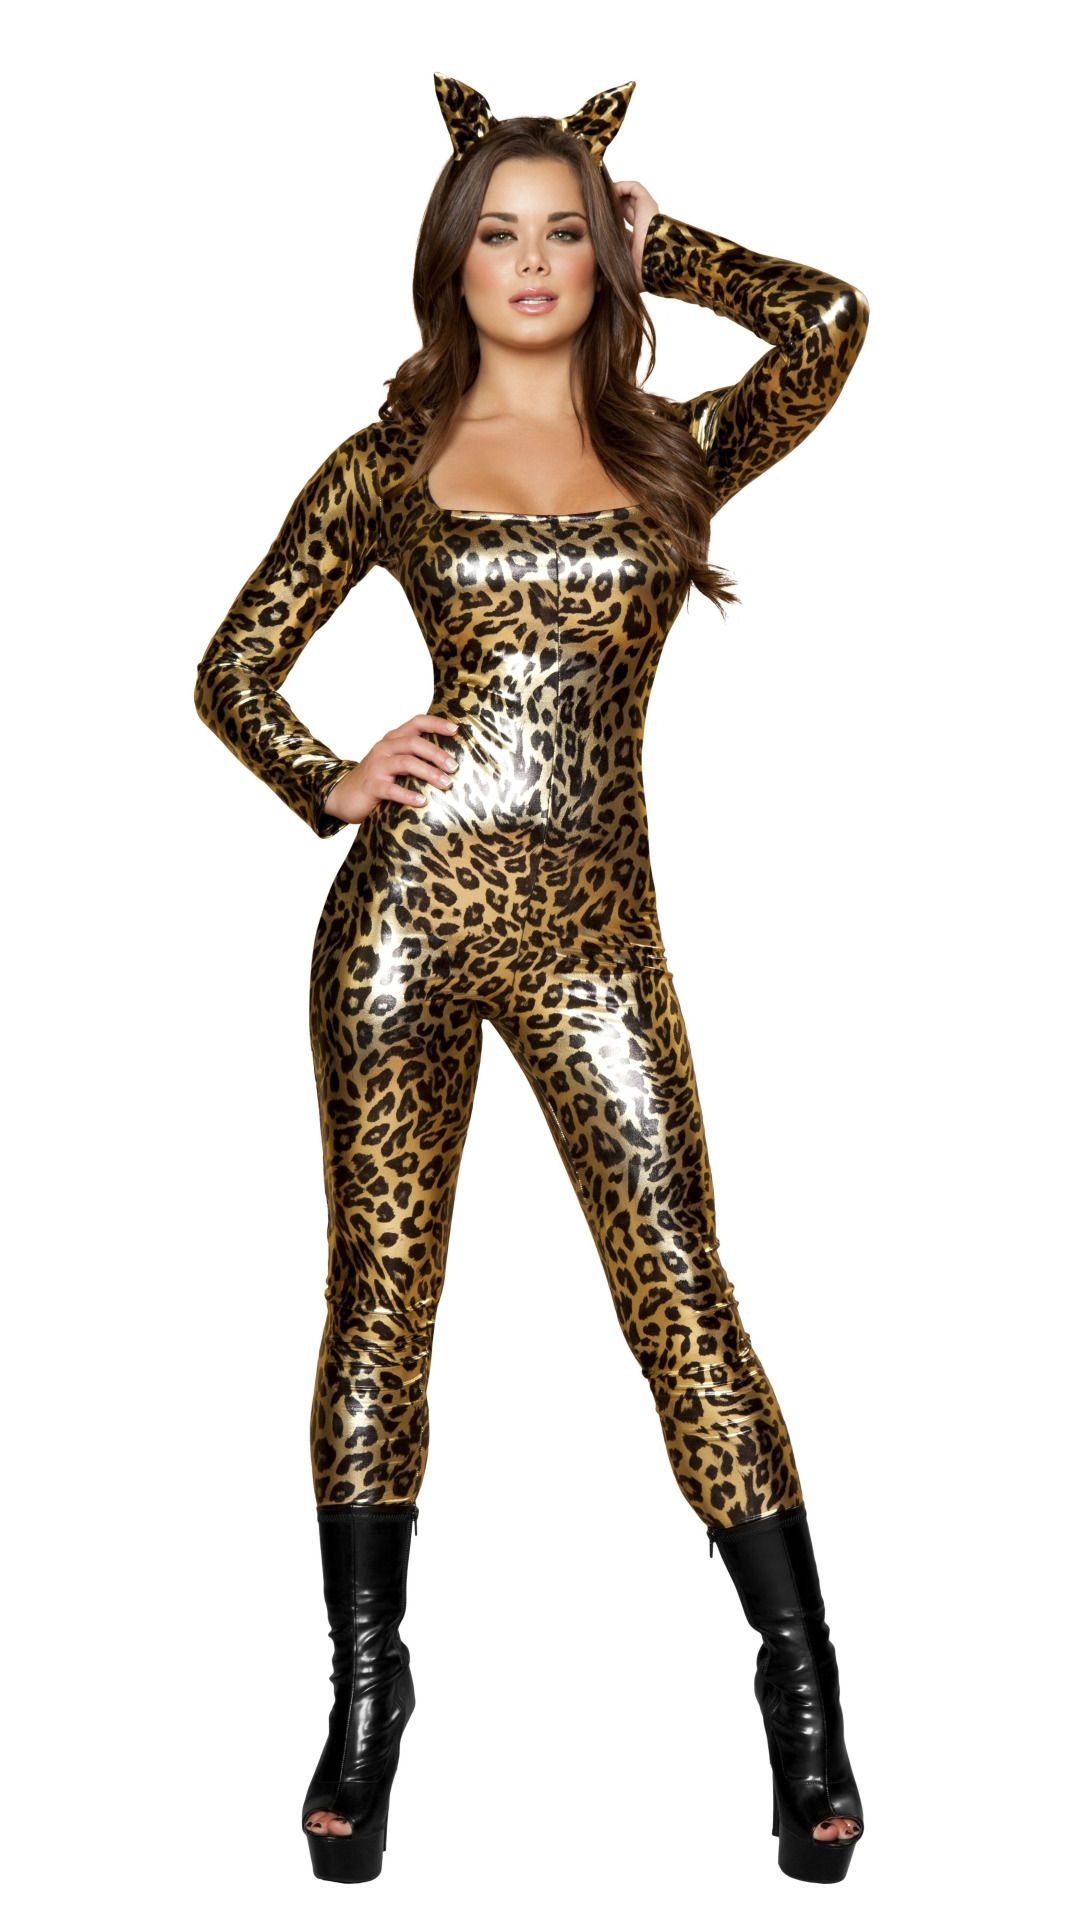 210421b7c34 Metallic Leopard Jumpsuit Halloween Costume